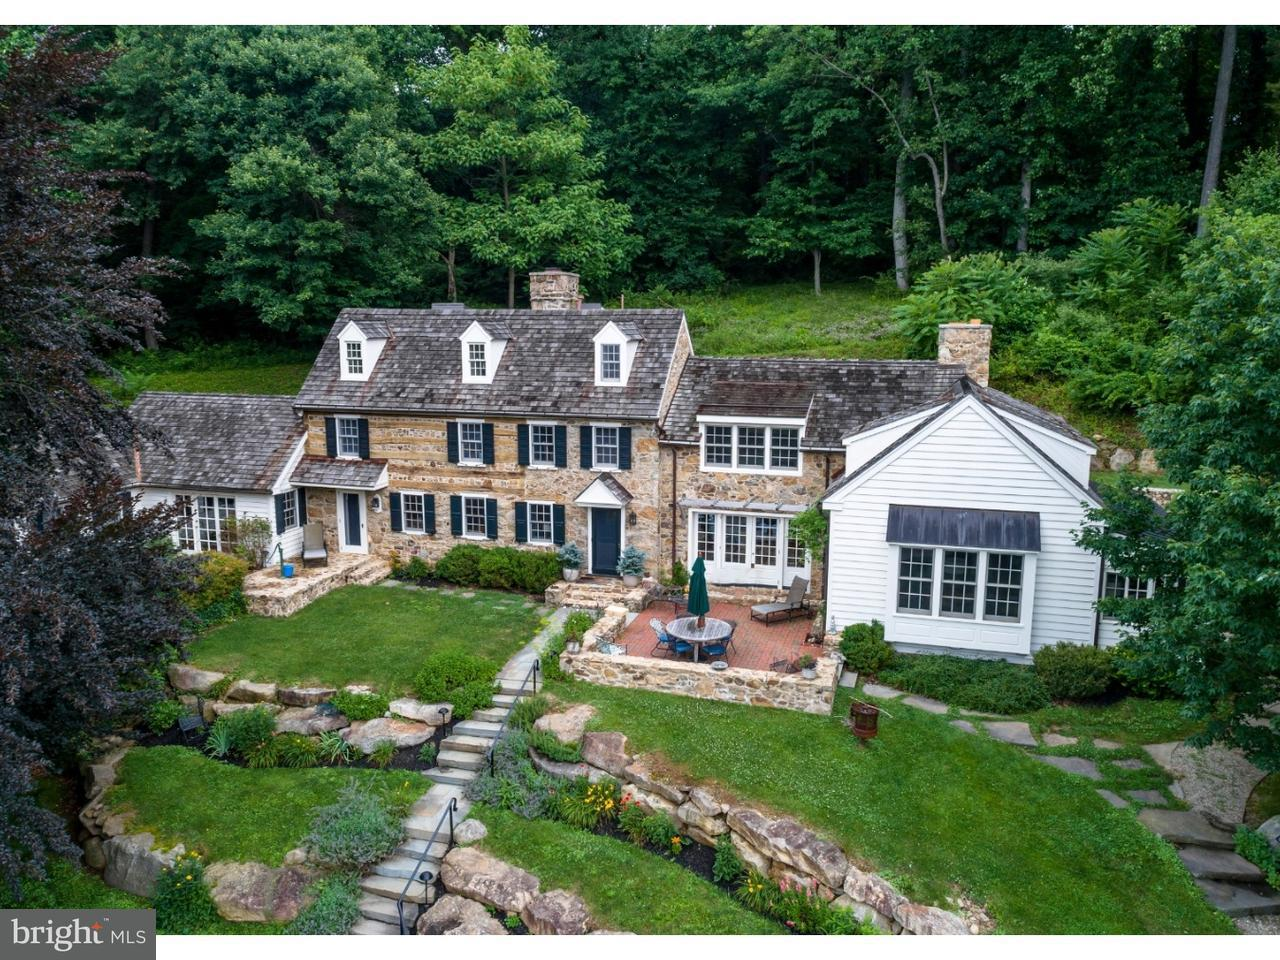 Casa Unifamiliar por un Venta en 63 WALNUT BANK Road Glenmoore, Pennsylvania 19343 Estados Unidos